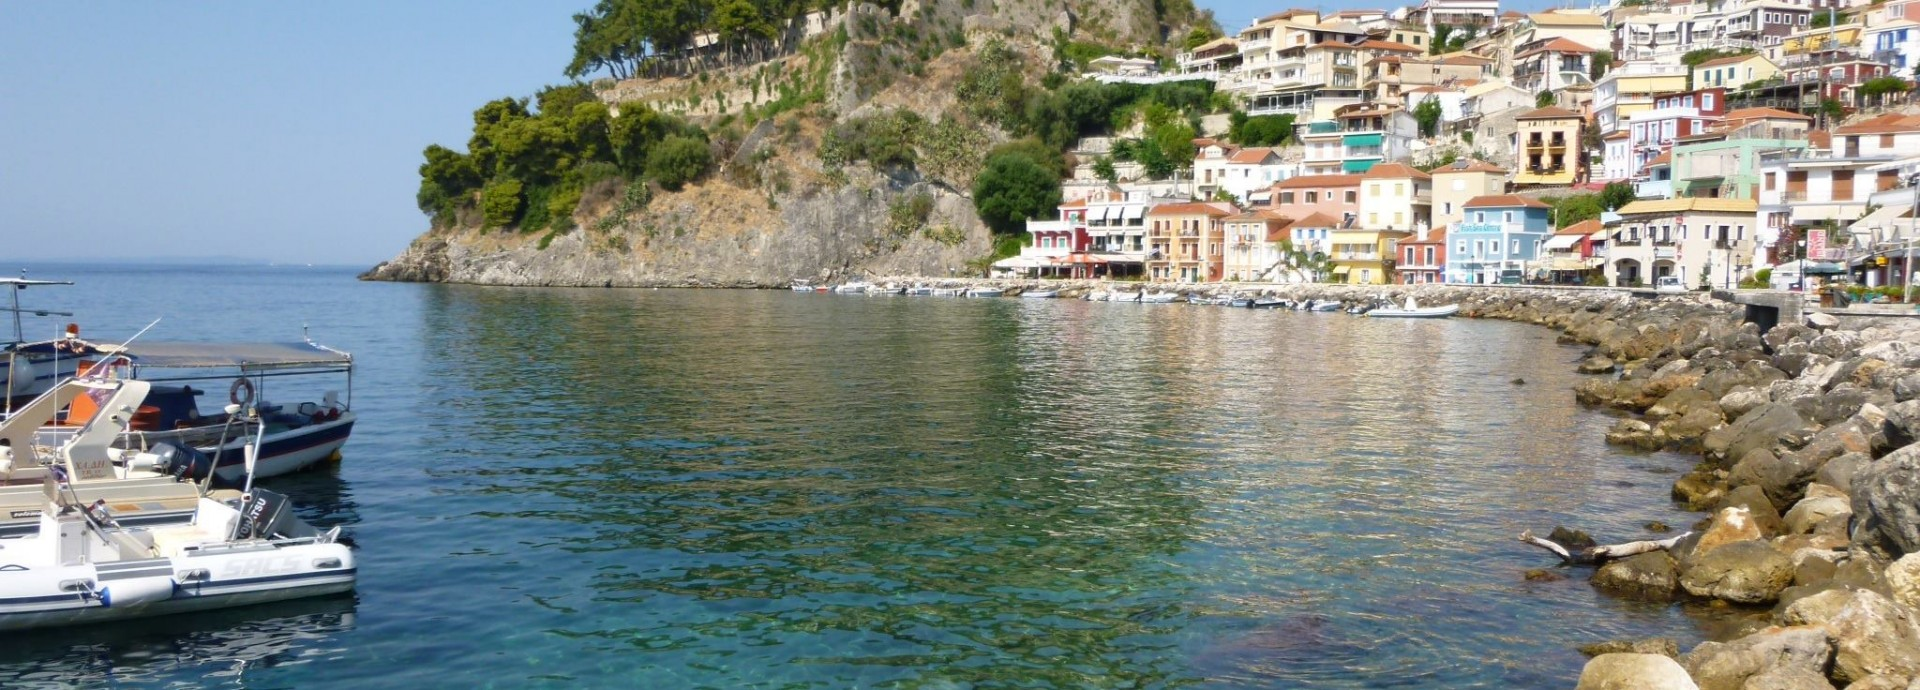 Sailing in Parga from the quay